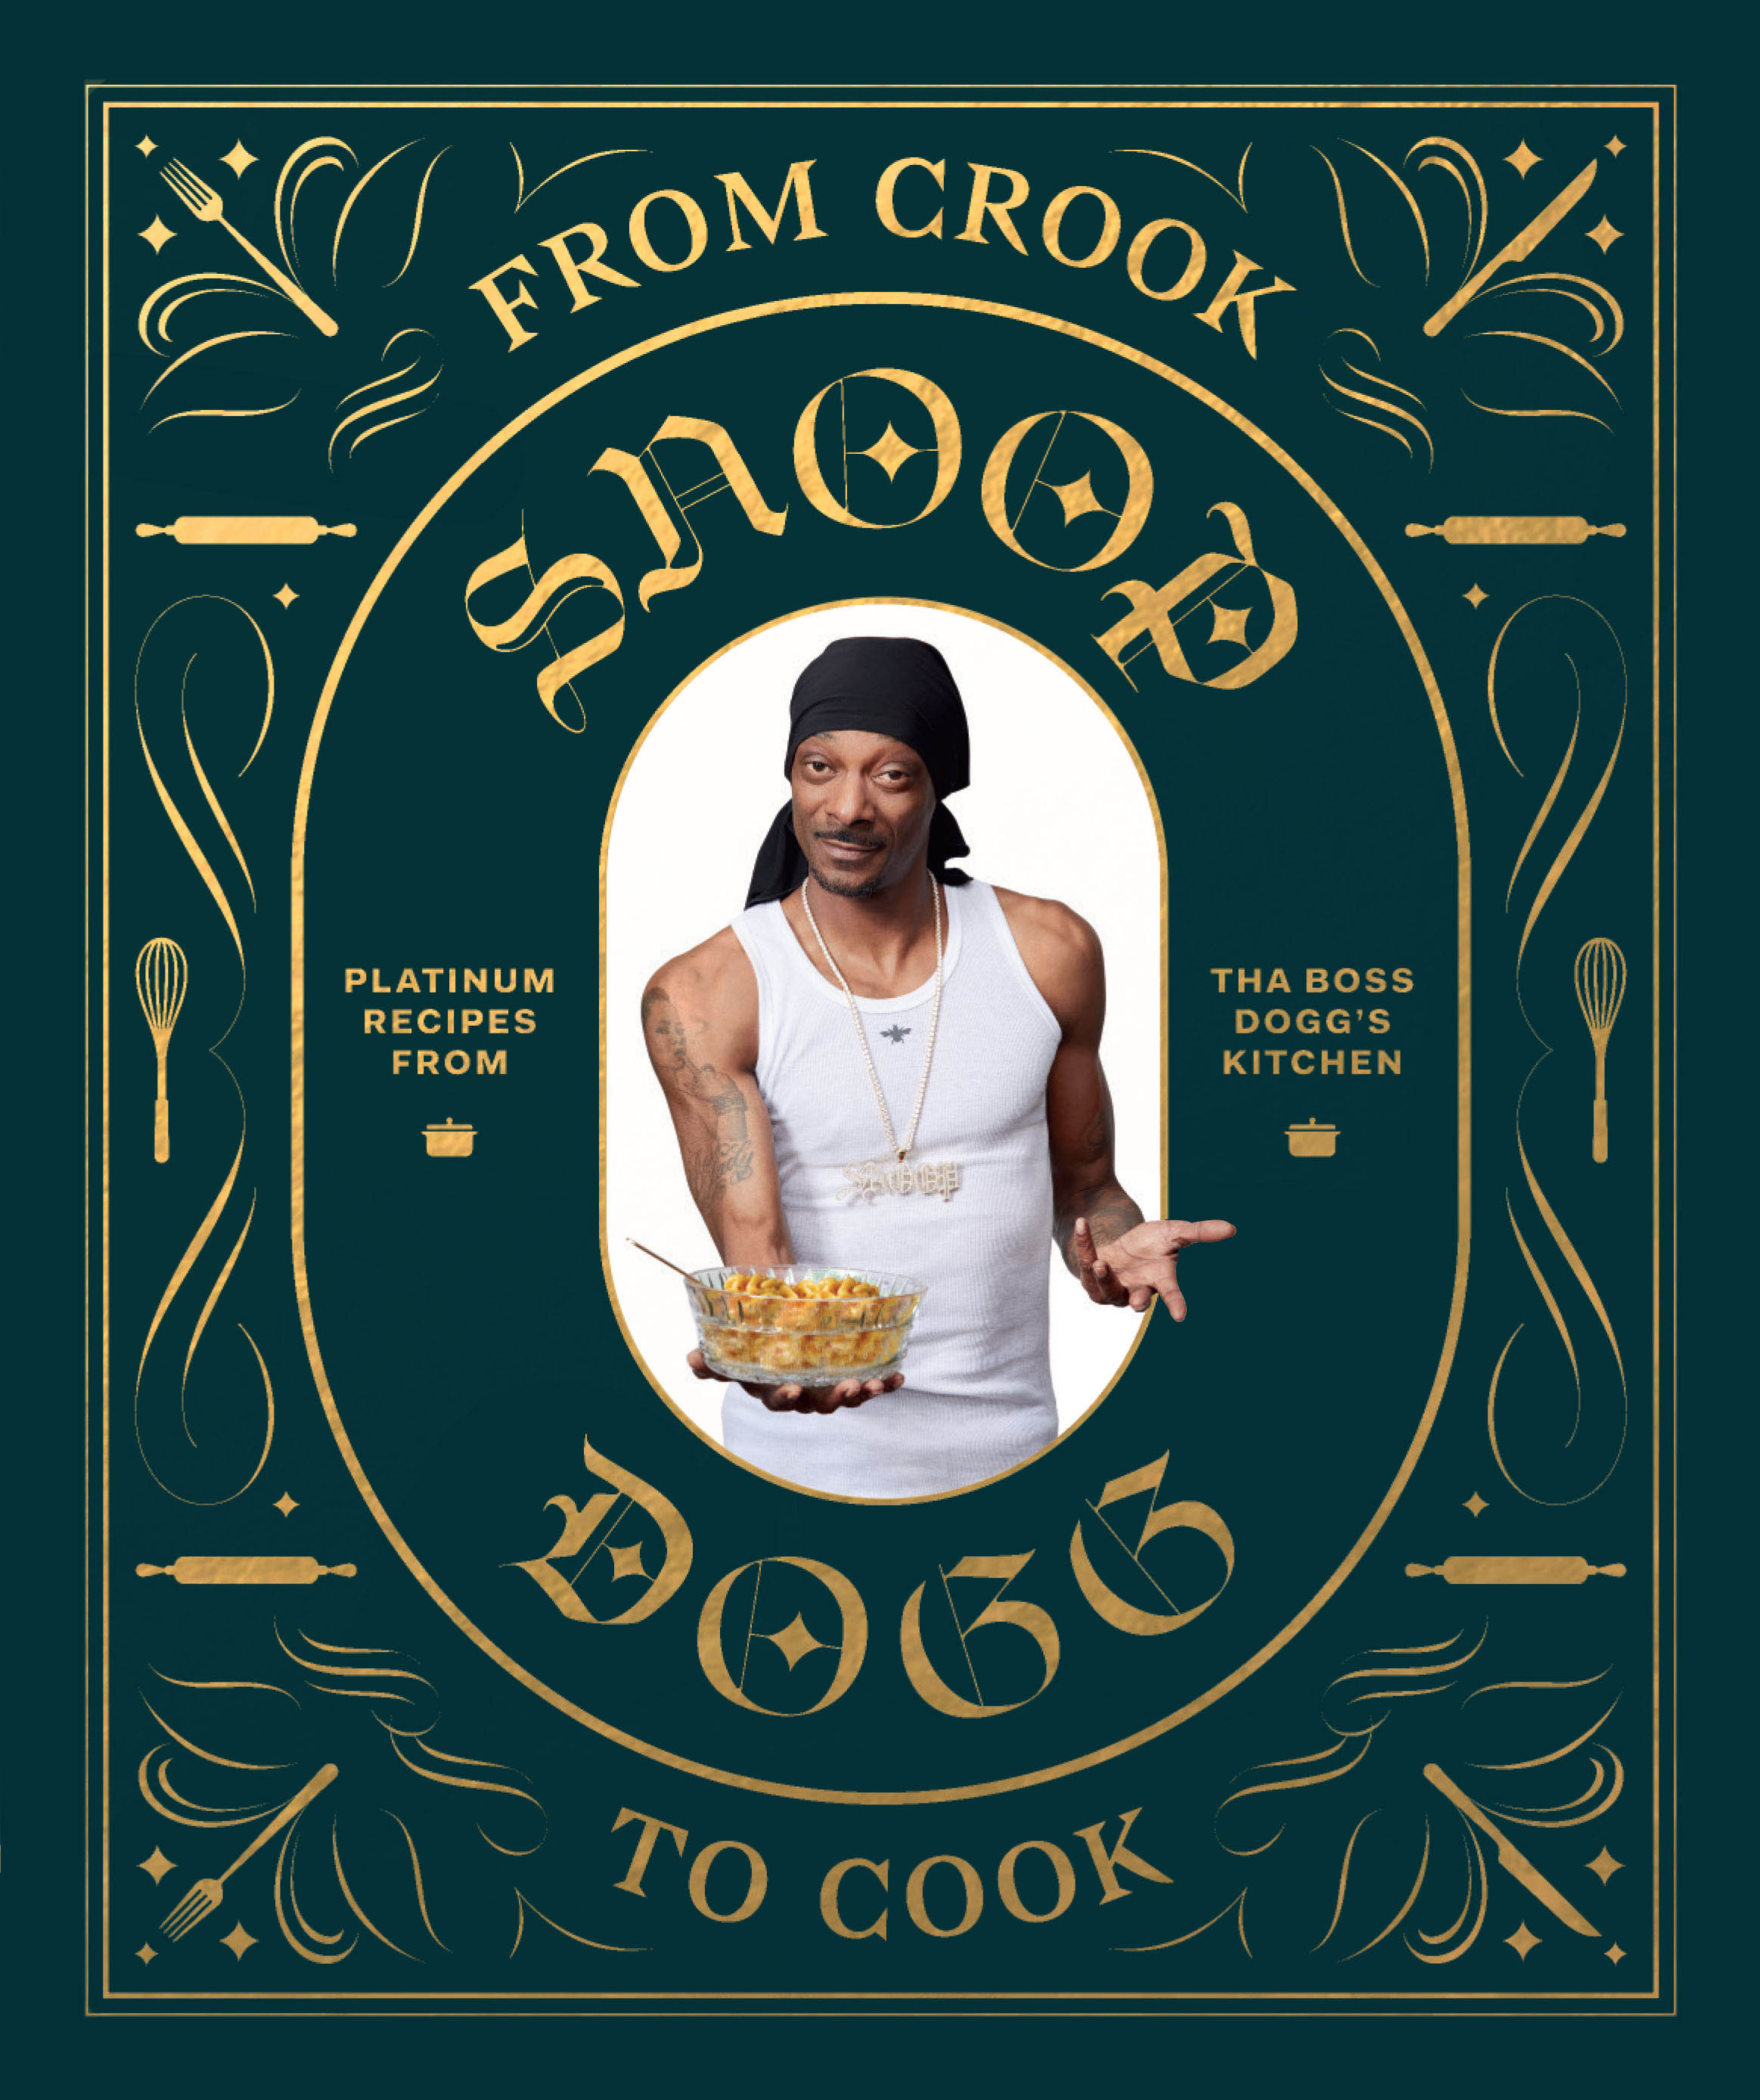 From Crook to Cook: Platinum Recipes from Tha Boss Dogg's Kitchen  by Snoop Dogg (Chronicle Books, £17.99)  Foto © 2018 Antonis Achilleos and Heather Gildroy / Chronicle Books.